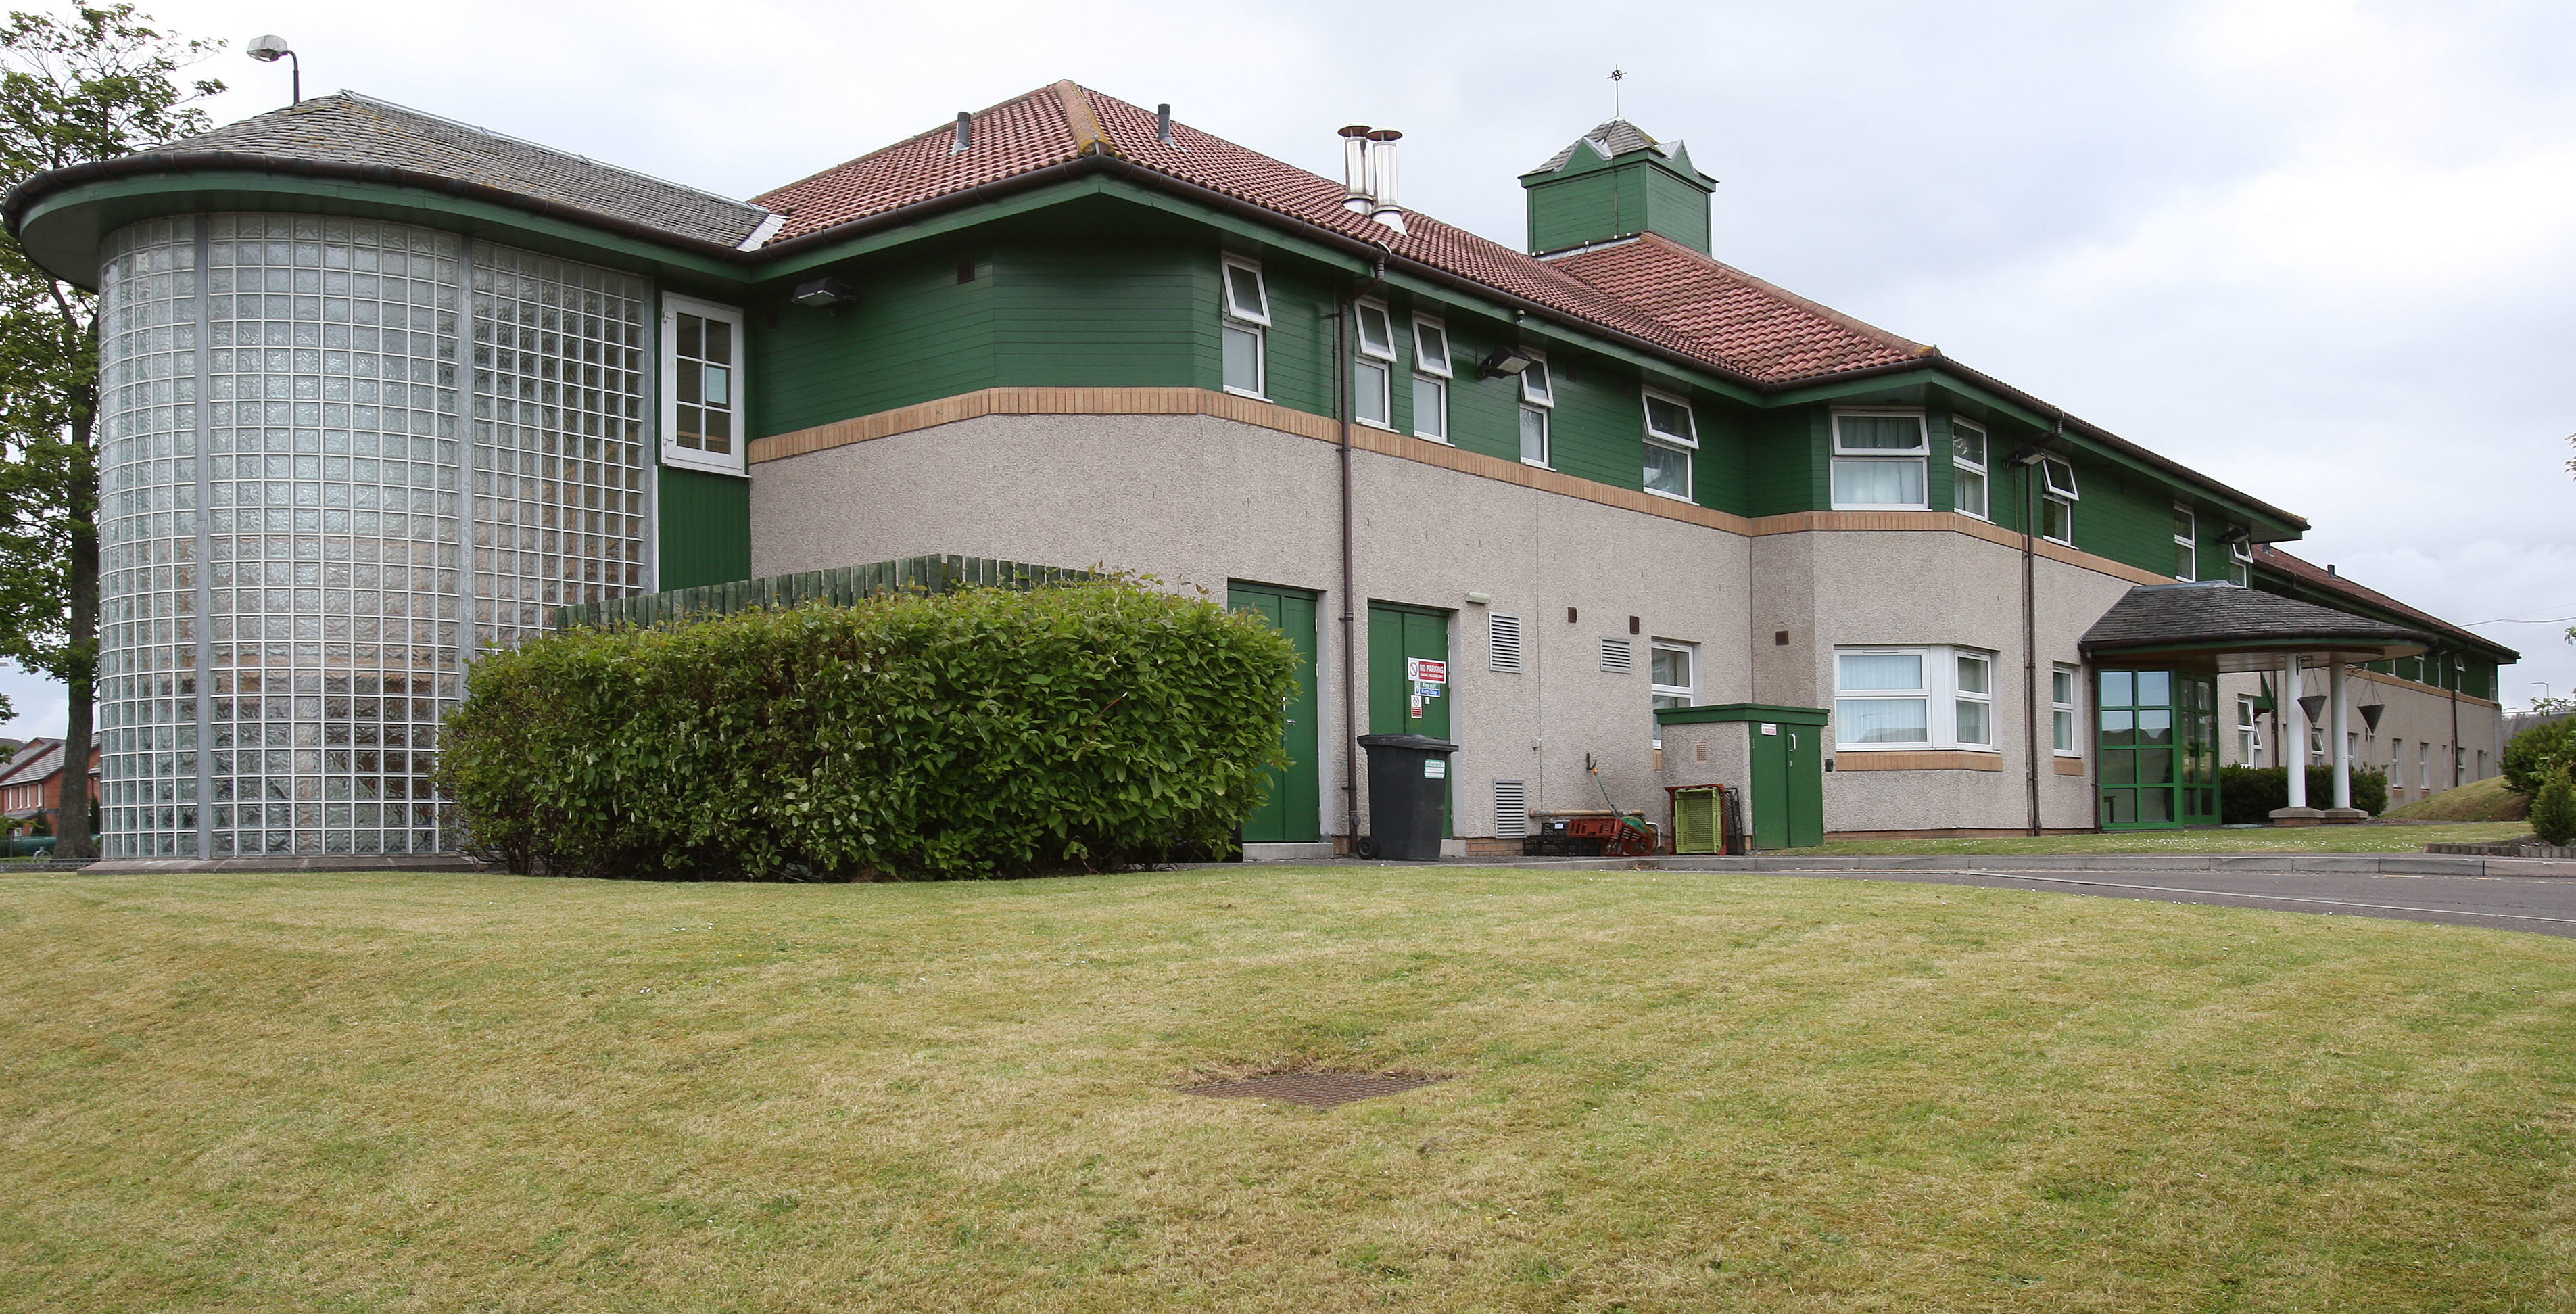 His victim was a resident of Monroe House Care Home on Americanmuir Road.